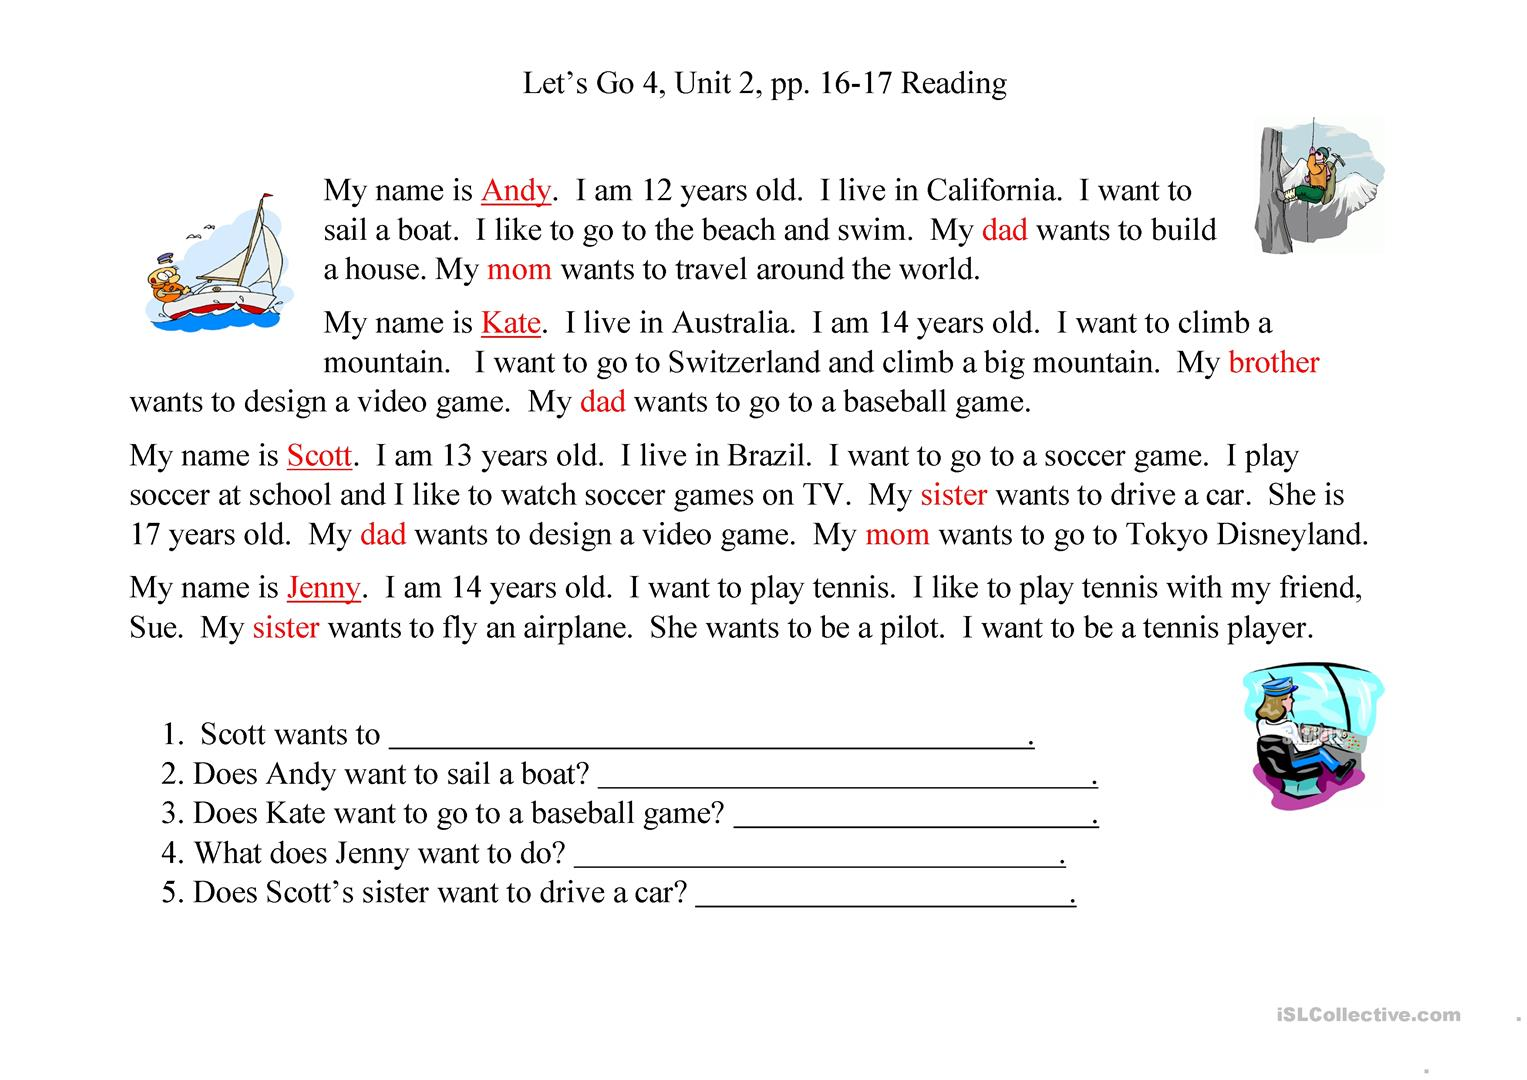 Let S Go 4 Unit 2 Reading Worksheet